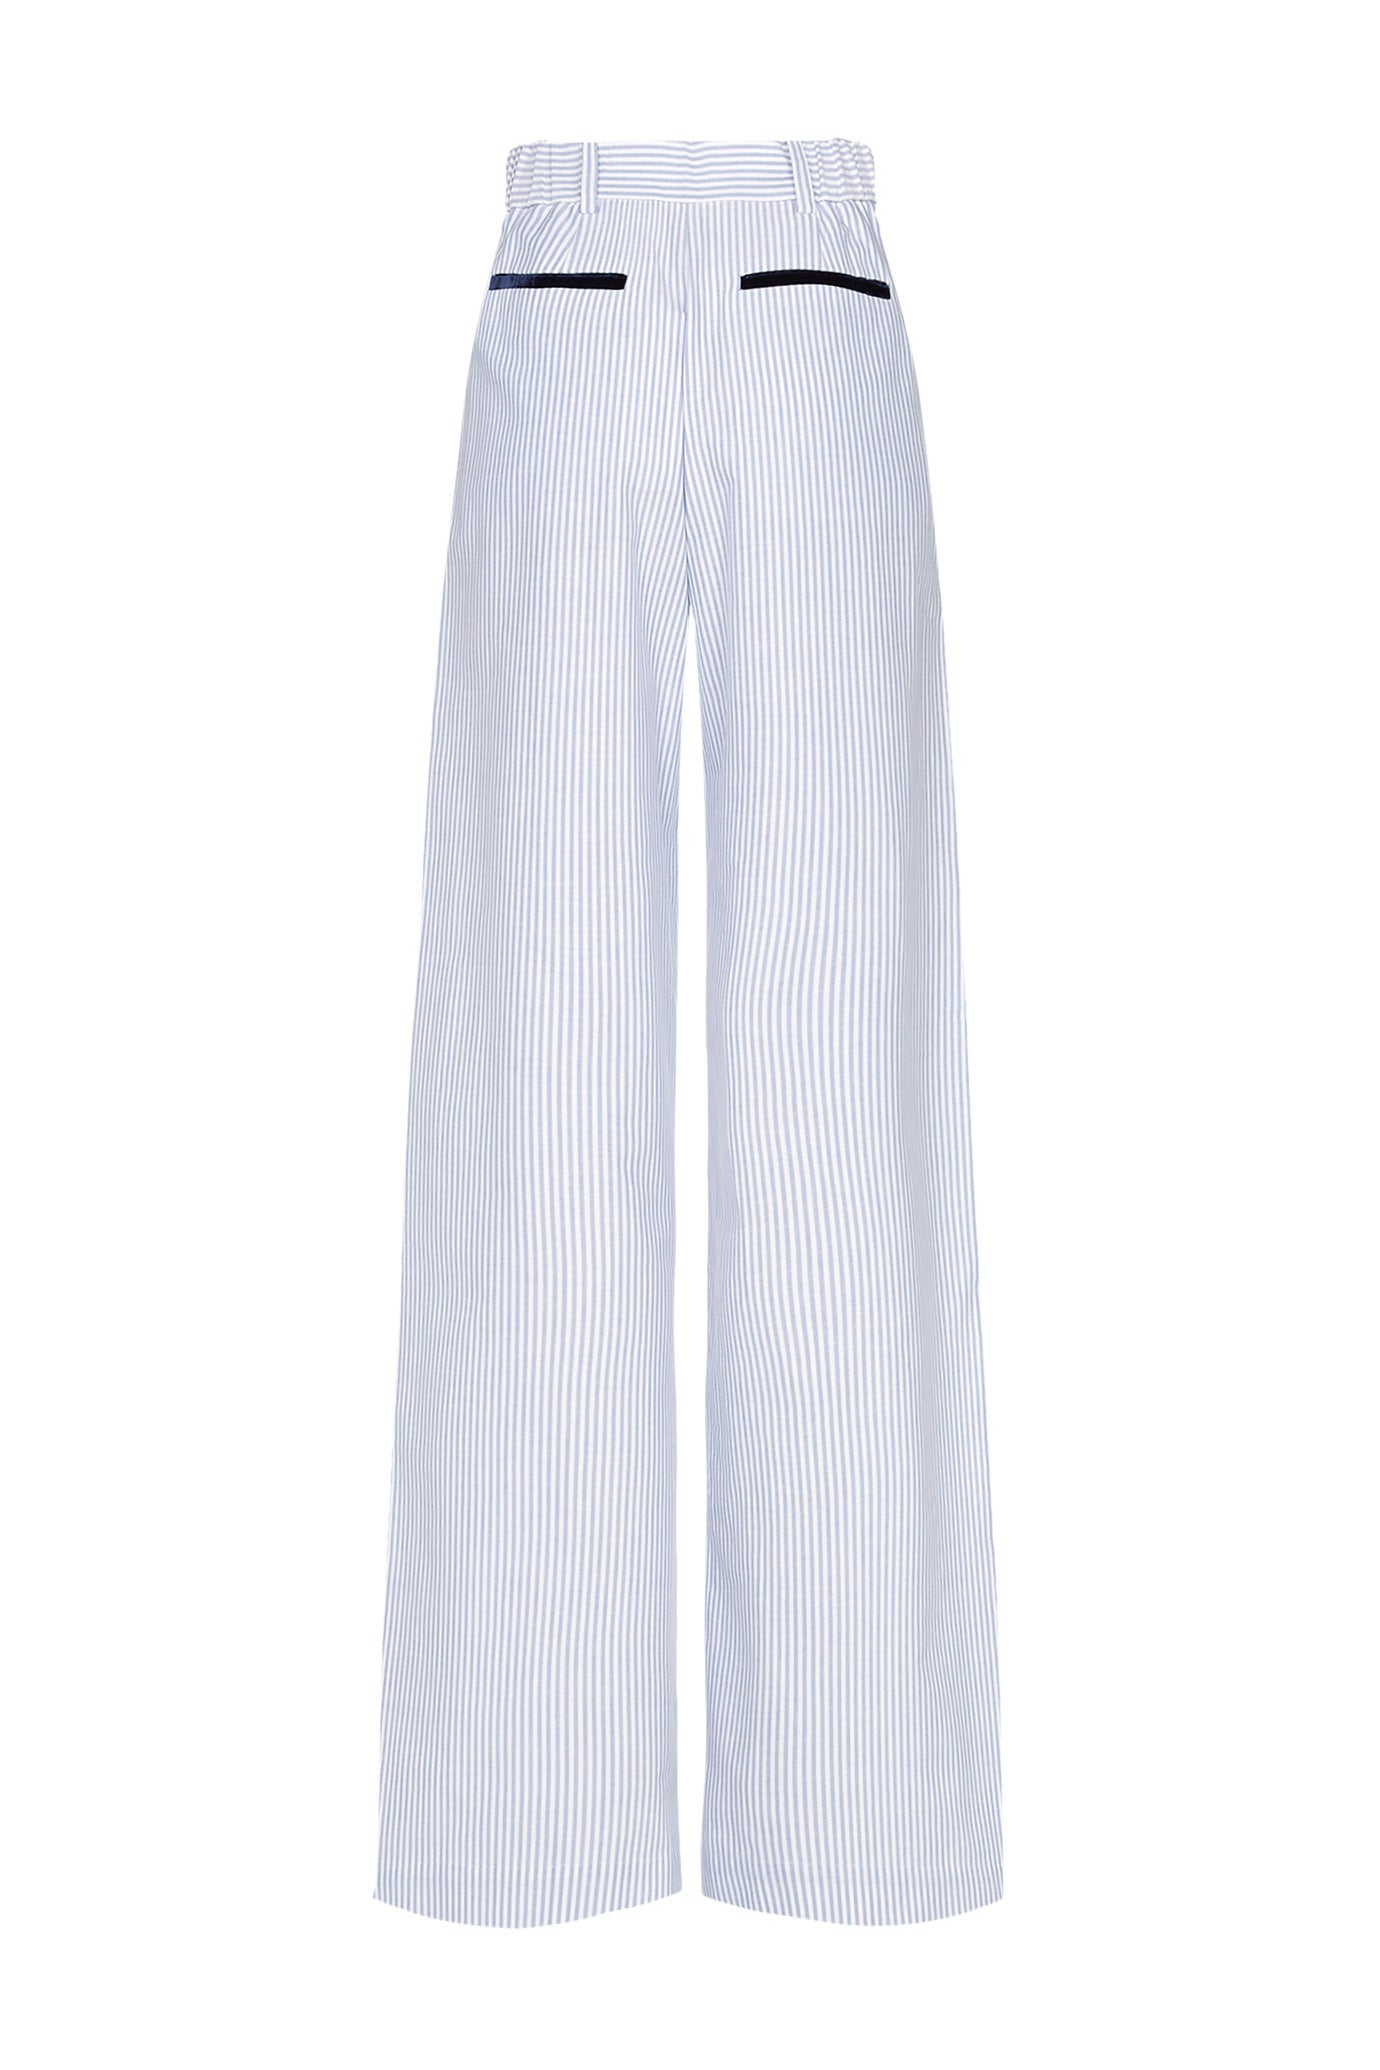 The Serena Trouser - Blue Stripe Cotton - SERENA BUTE